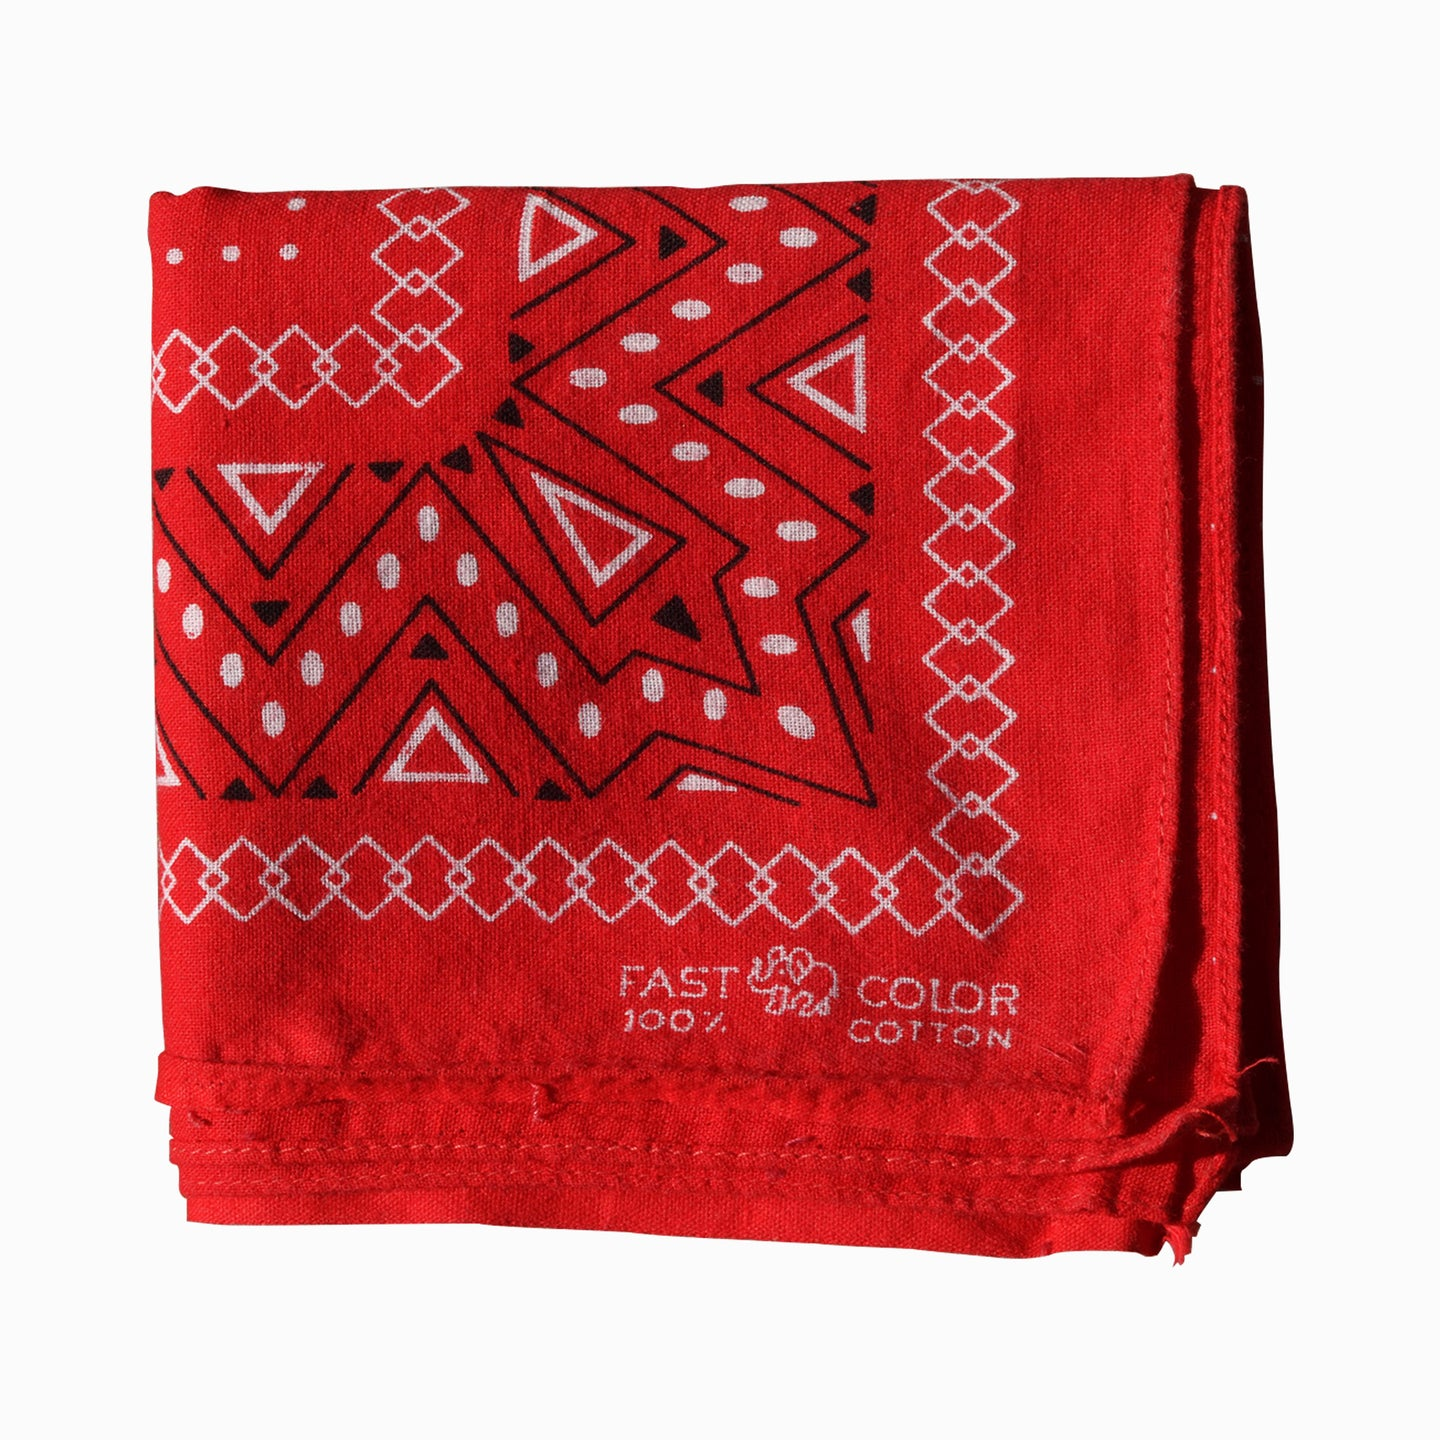 Elephant Brand - Cotton Bandana